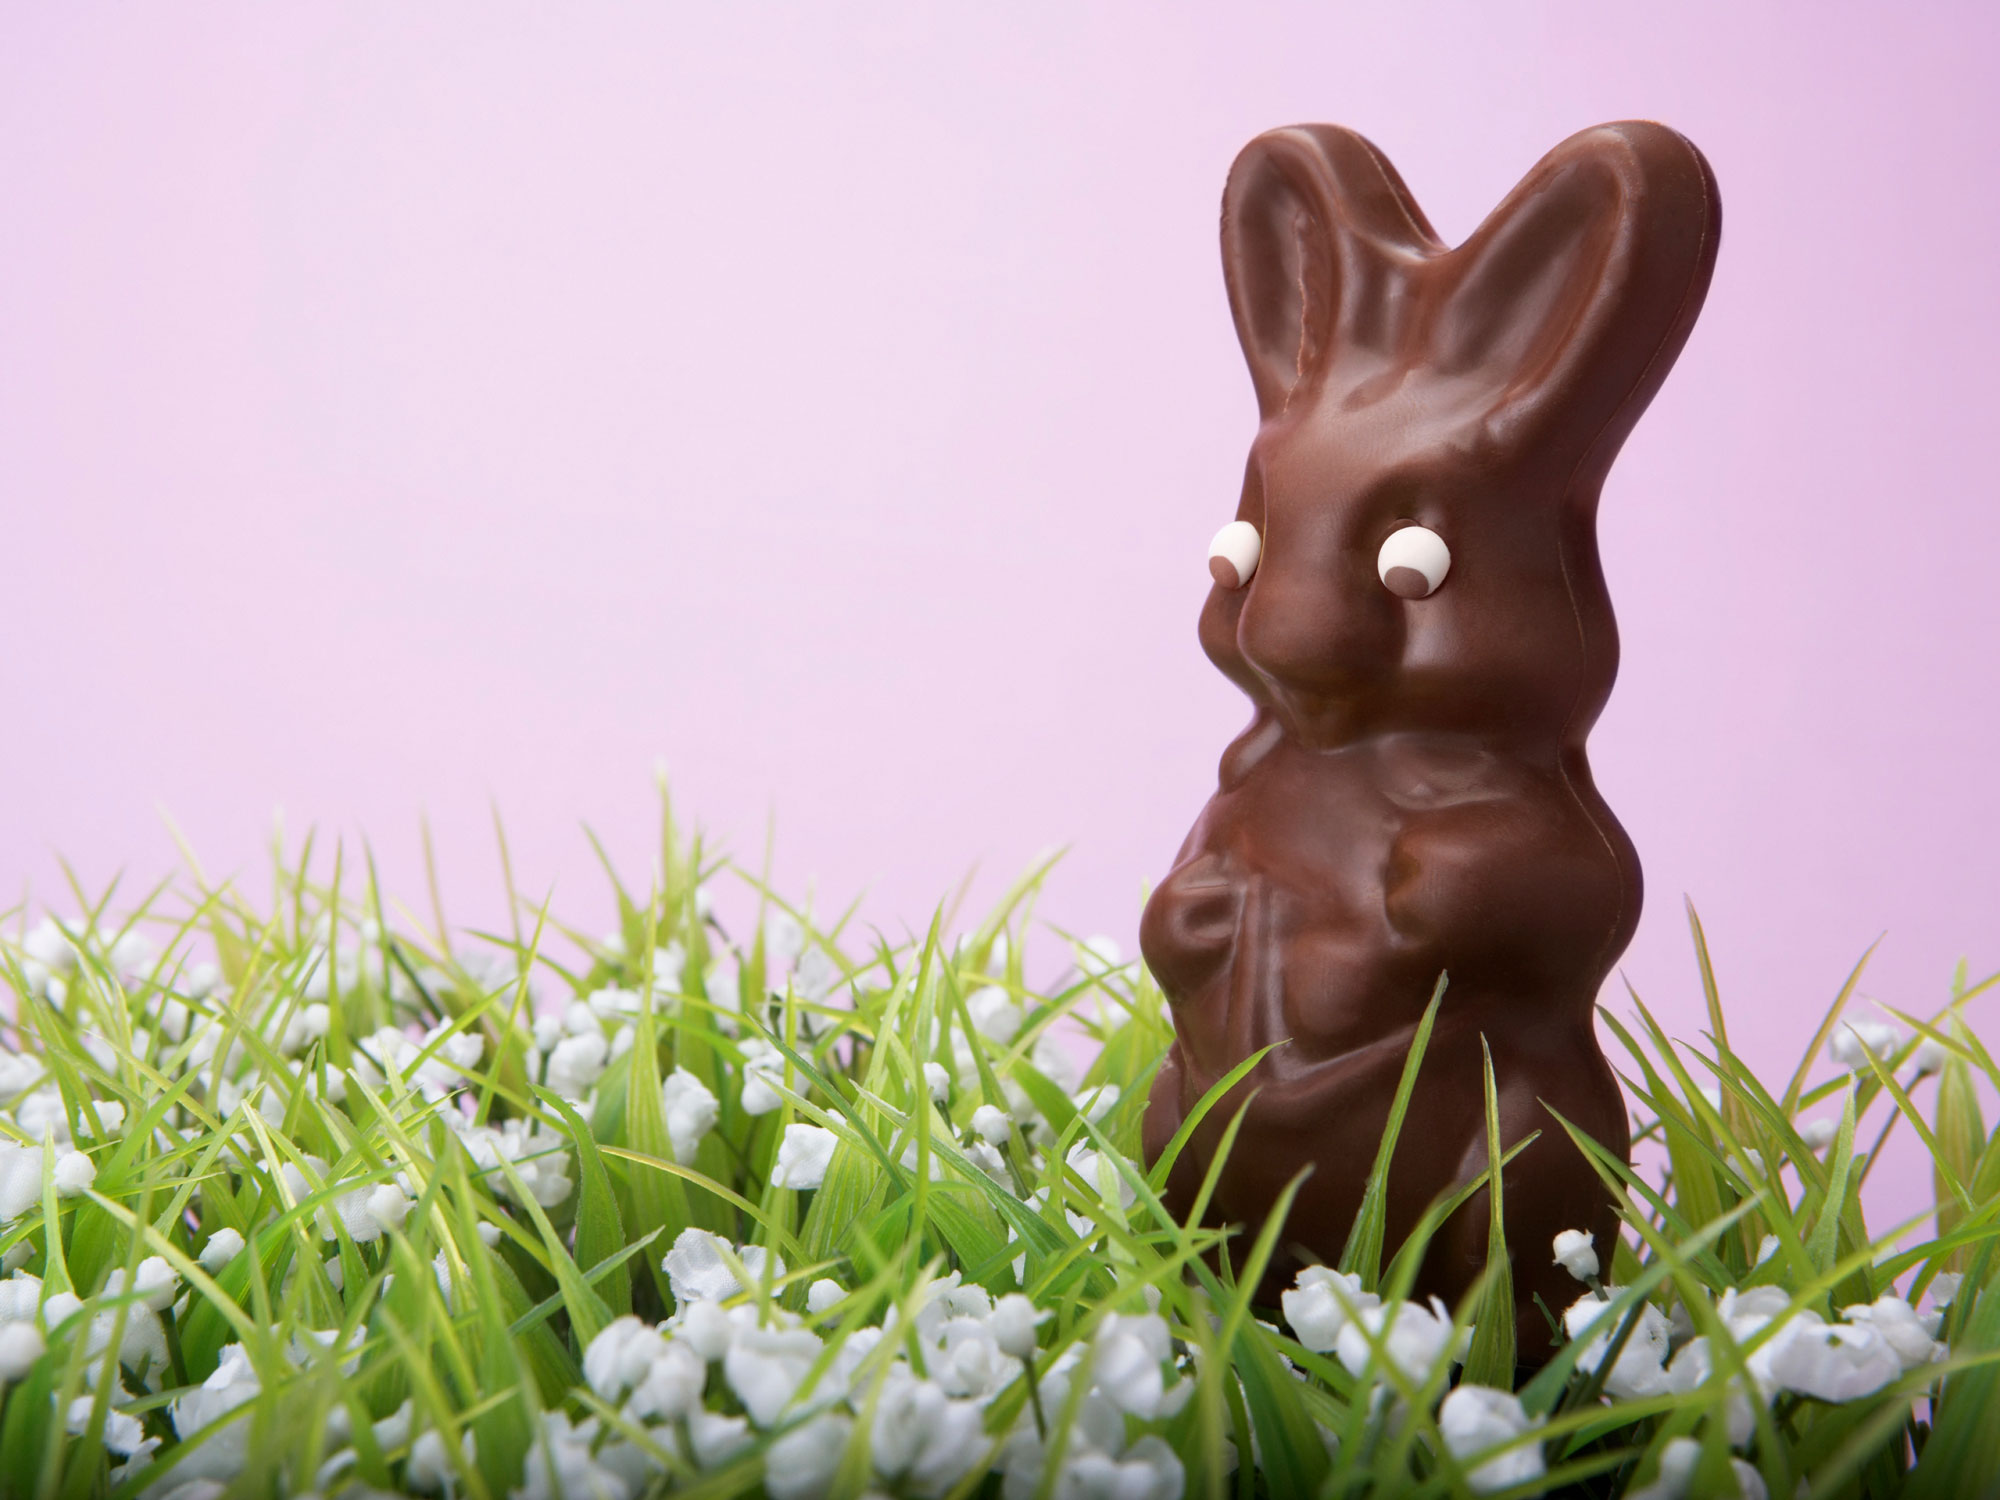 Your Chocolate Bunny May Not Really Be Made of Chocolate—Here's How to Tell